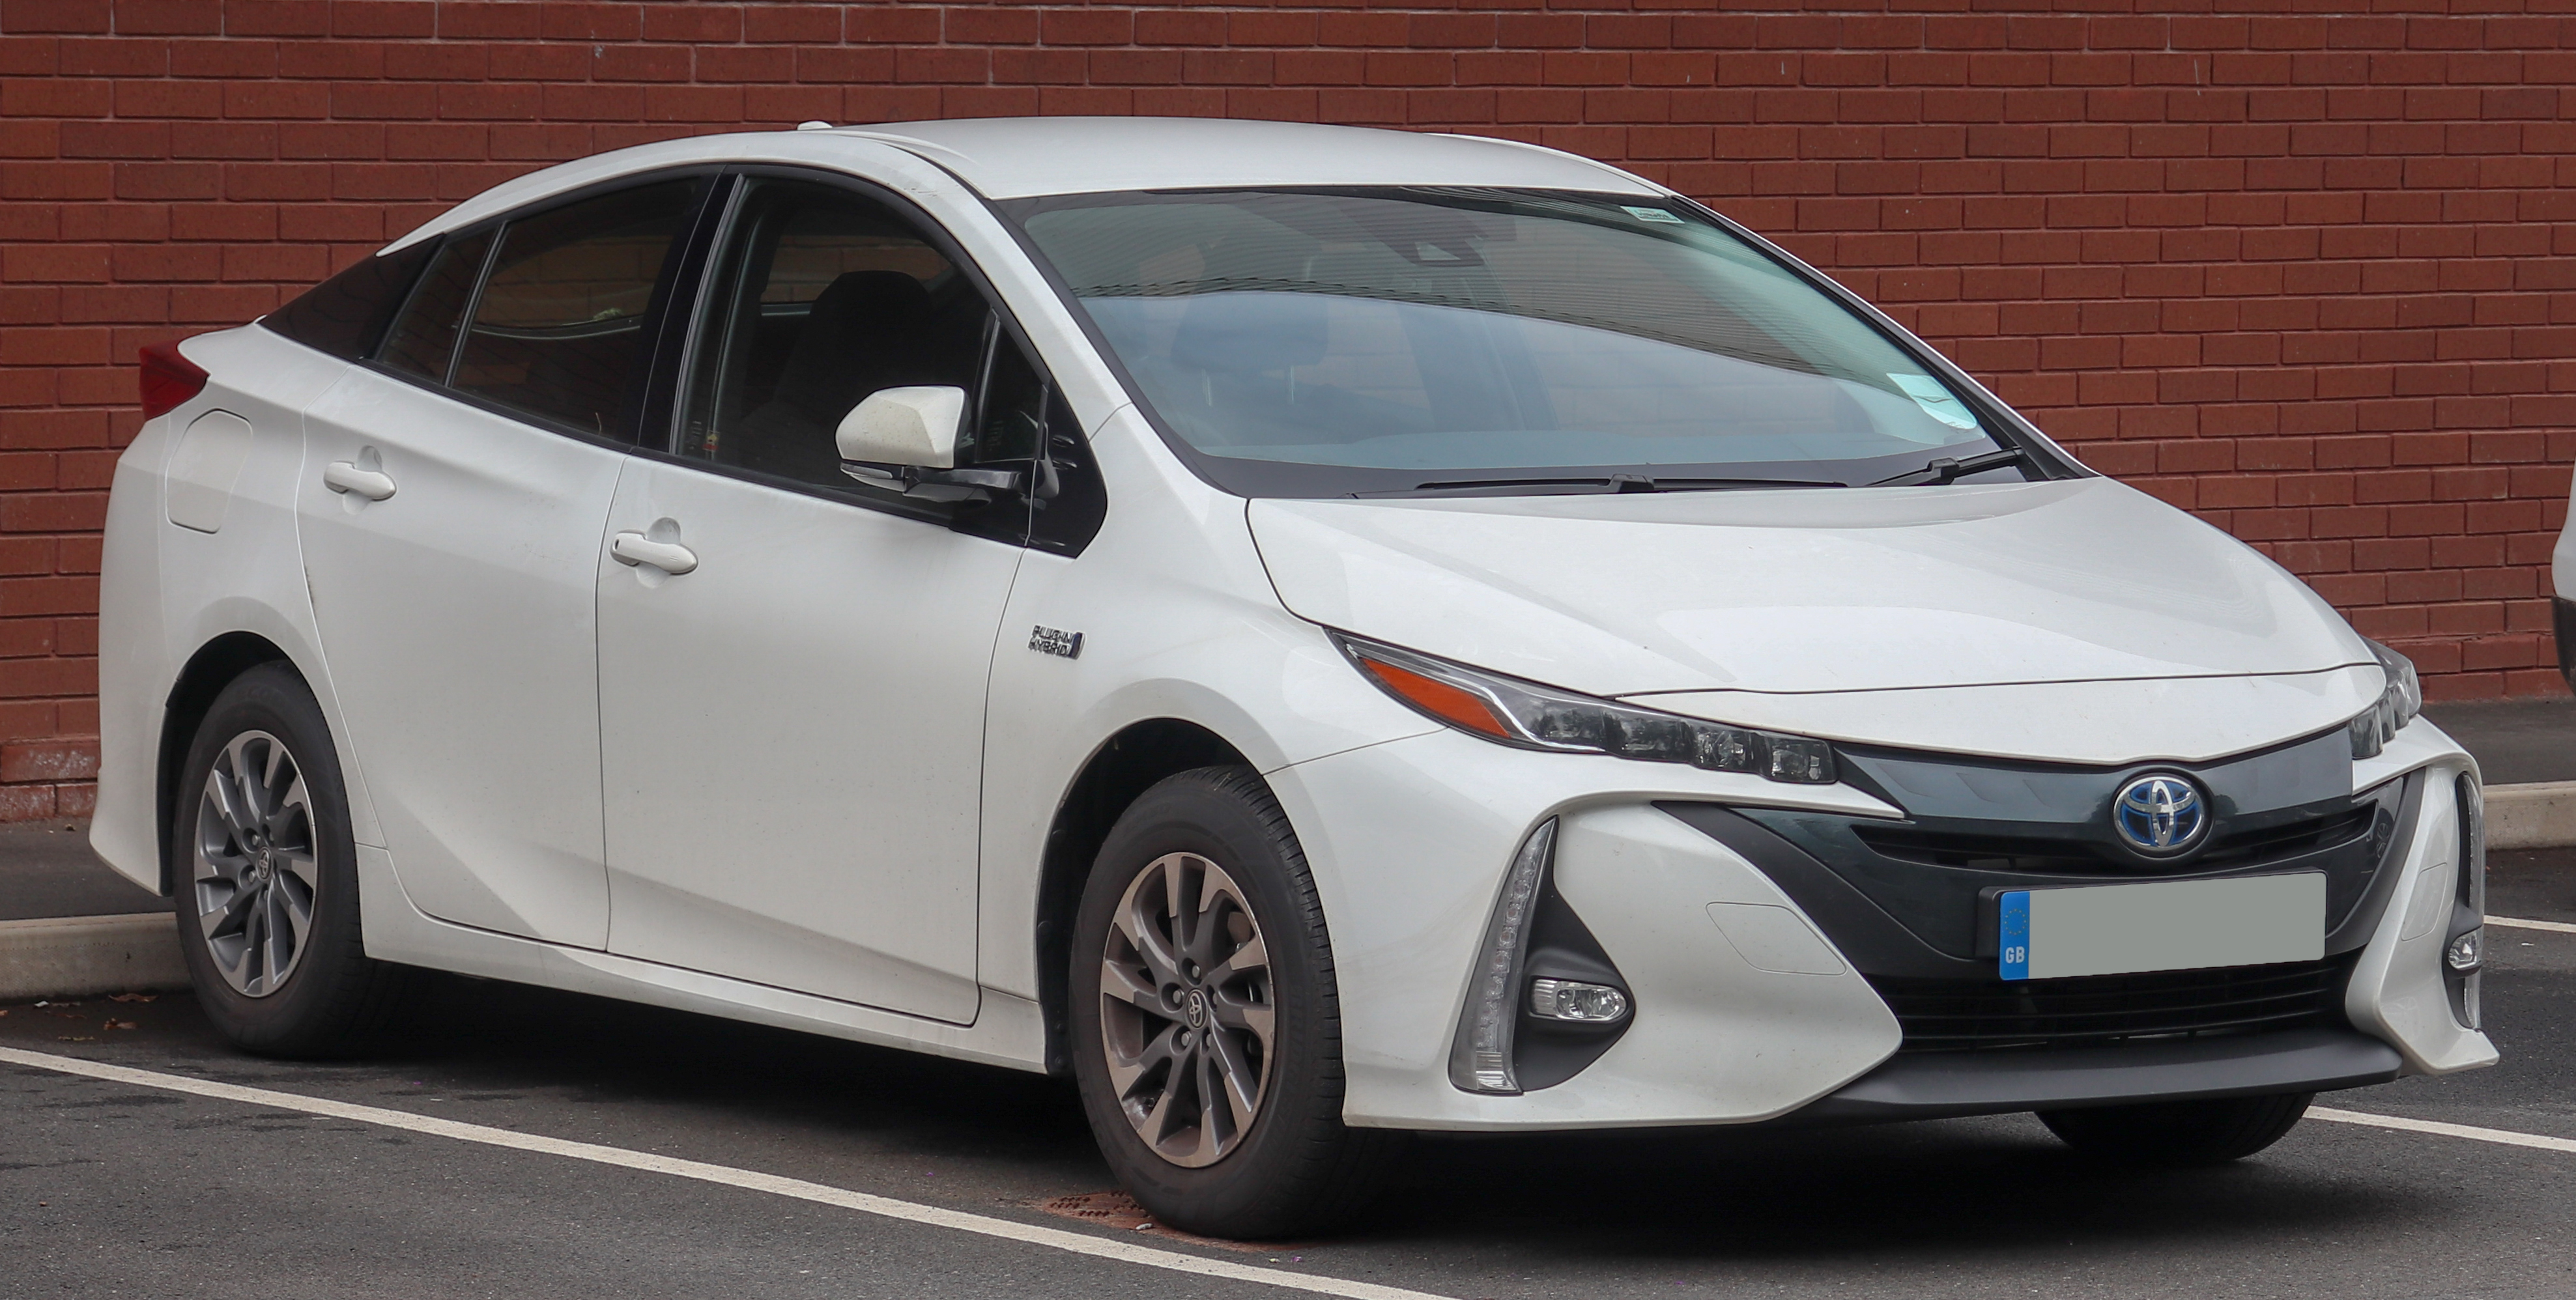 $446 /month for 36 months. Toyota Prius Plug In Hybrid Wikipedia